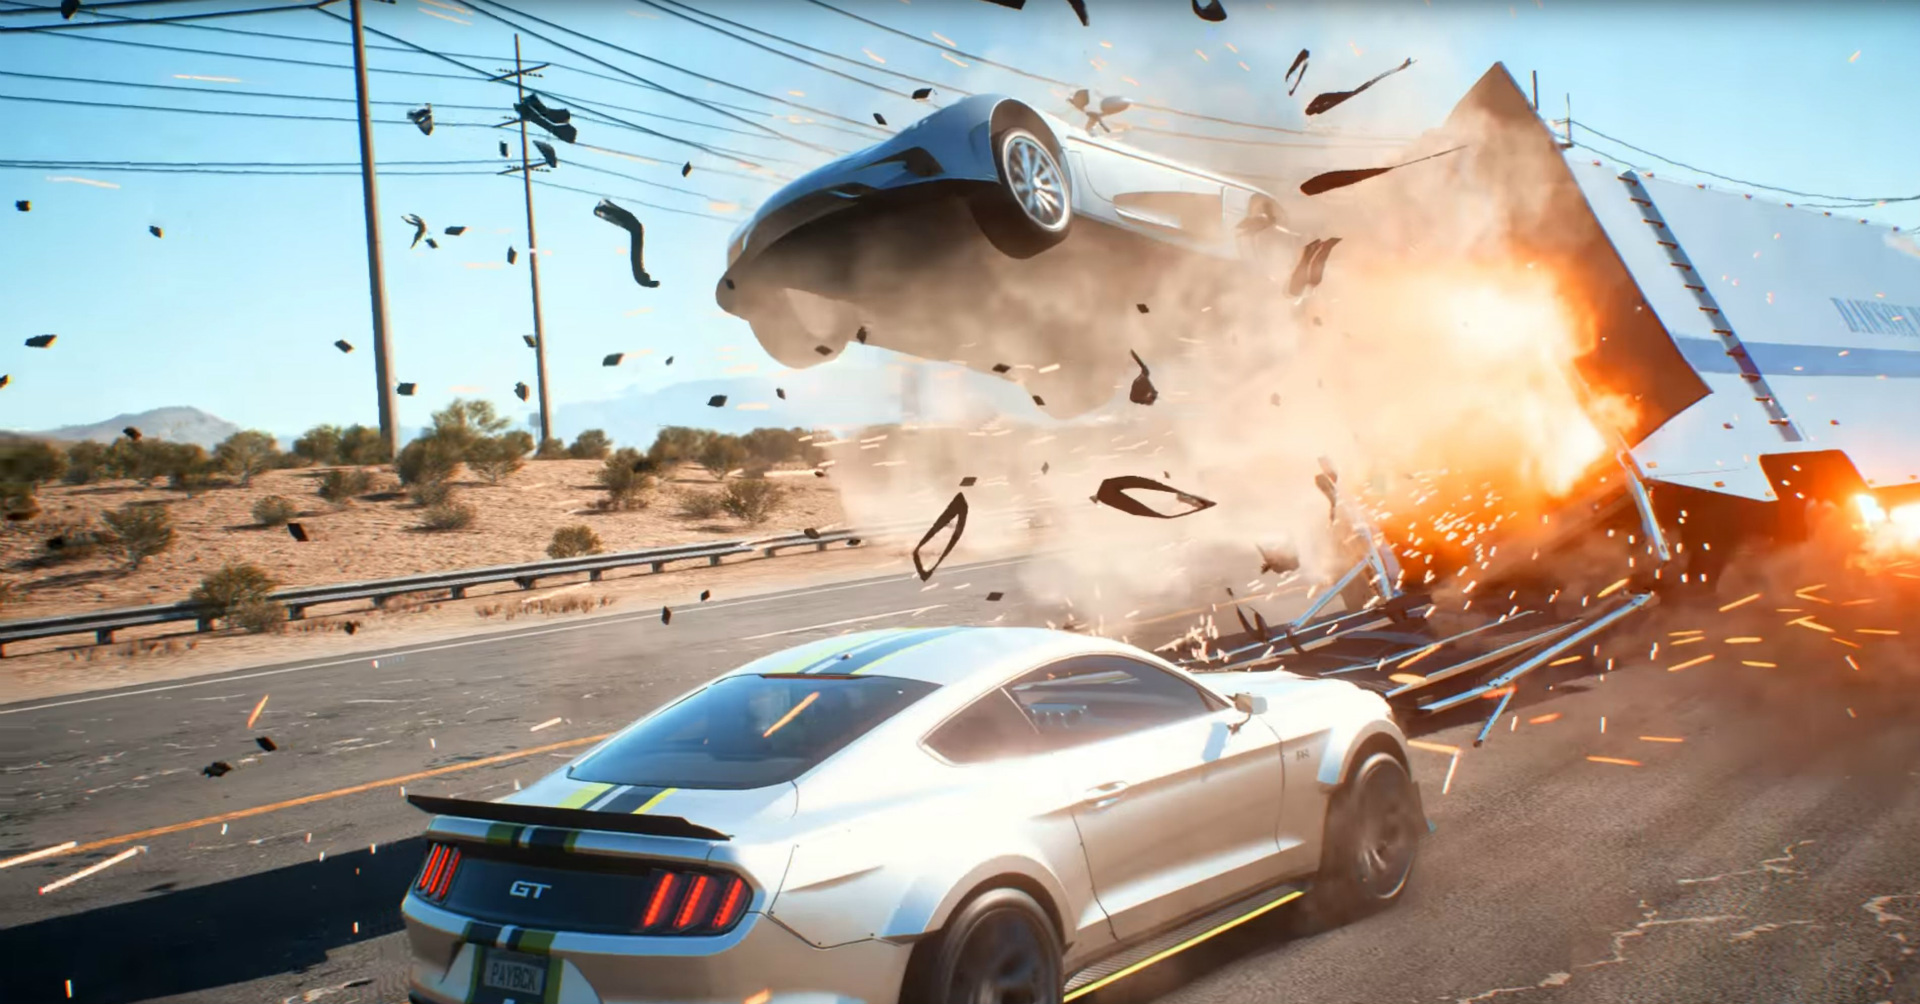 need for speed payback threads the needle between burnout and rivals usgamer. Black Bedroom Furniture Sets. Home Design Ideas